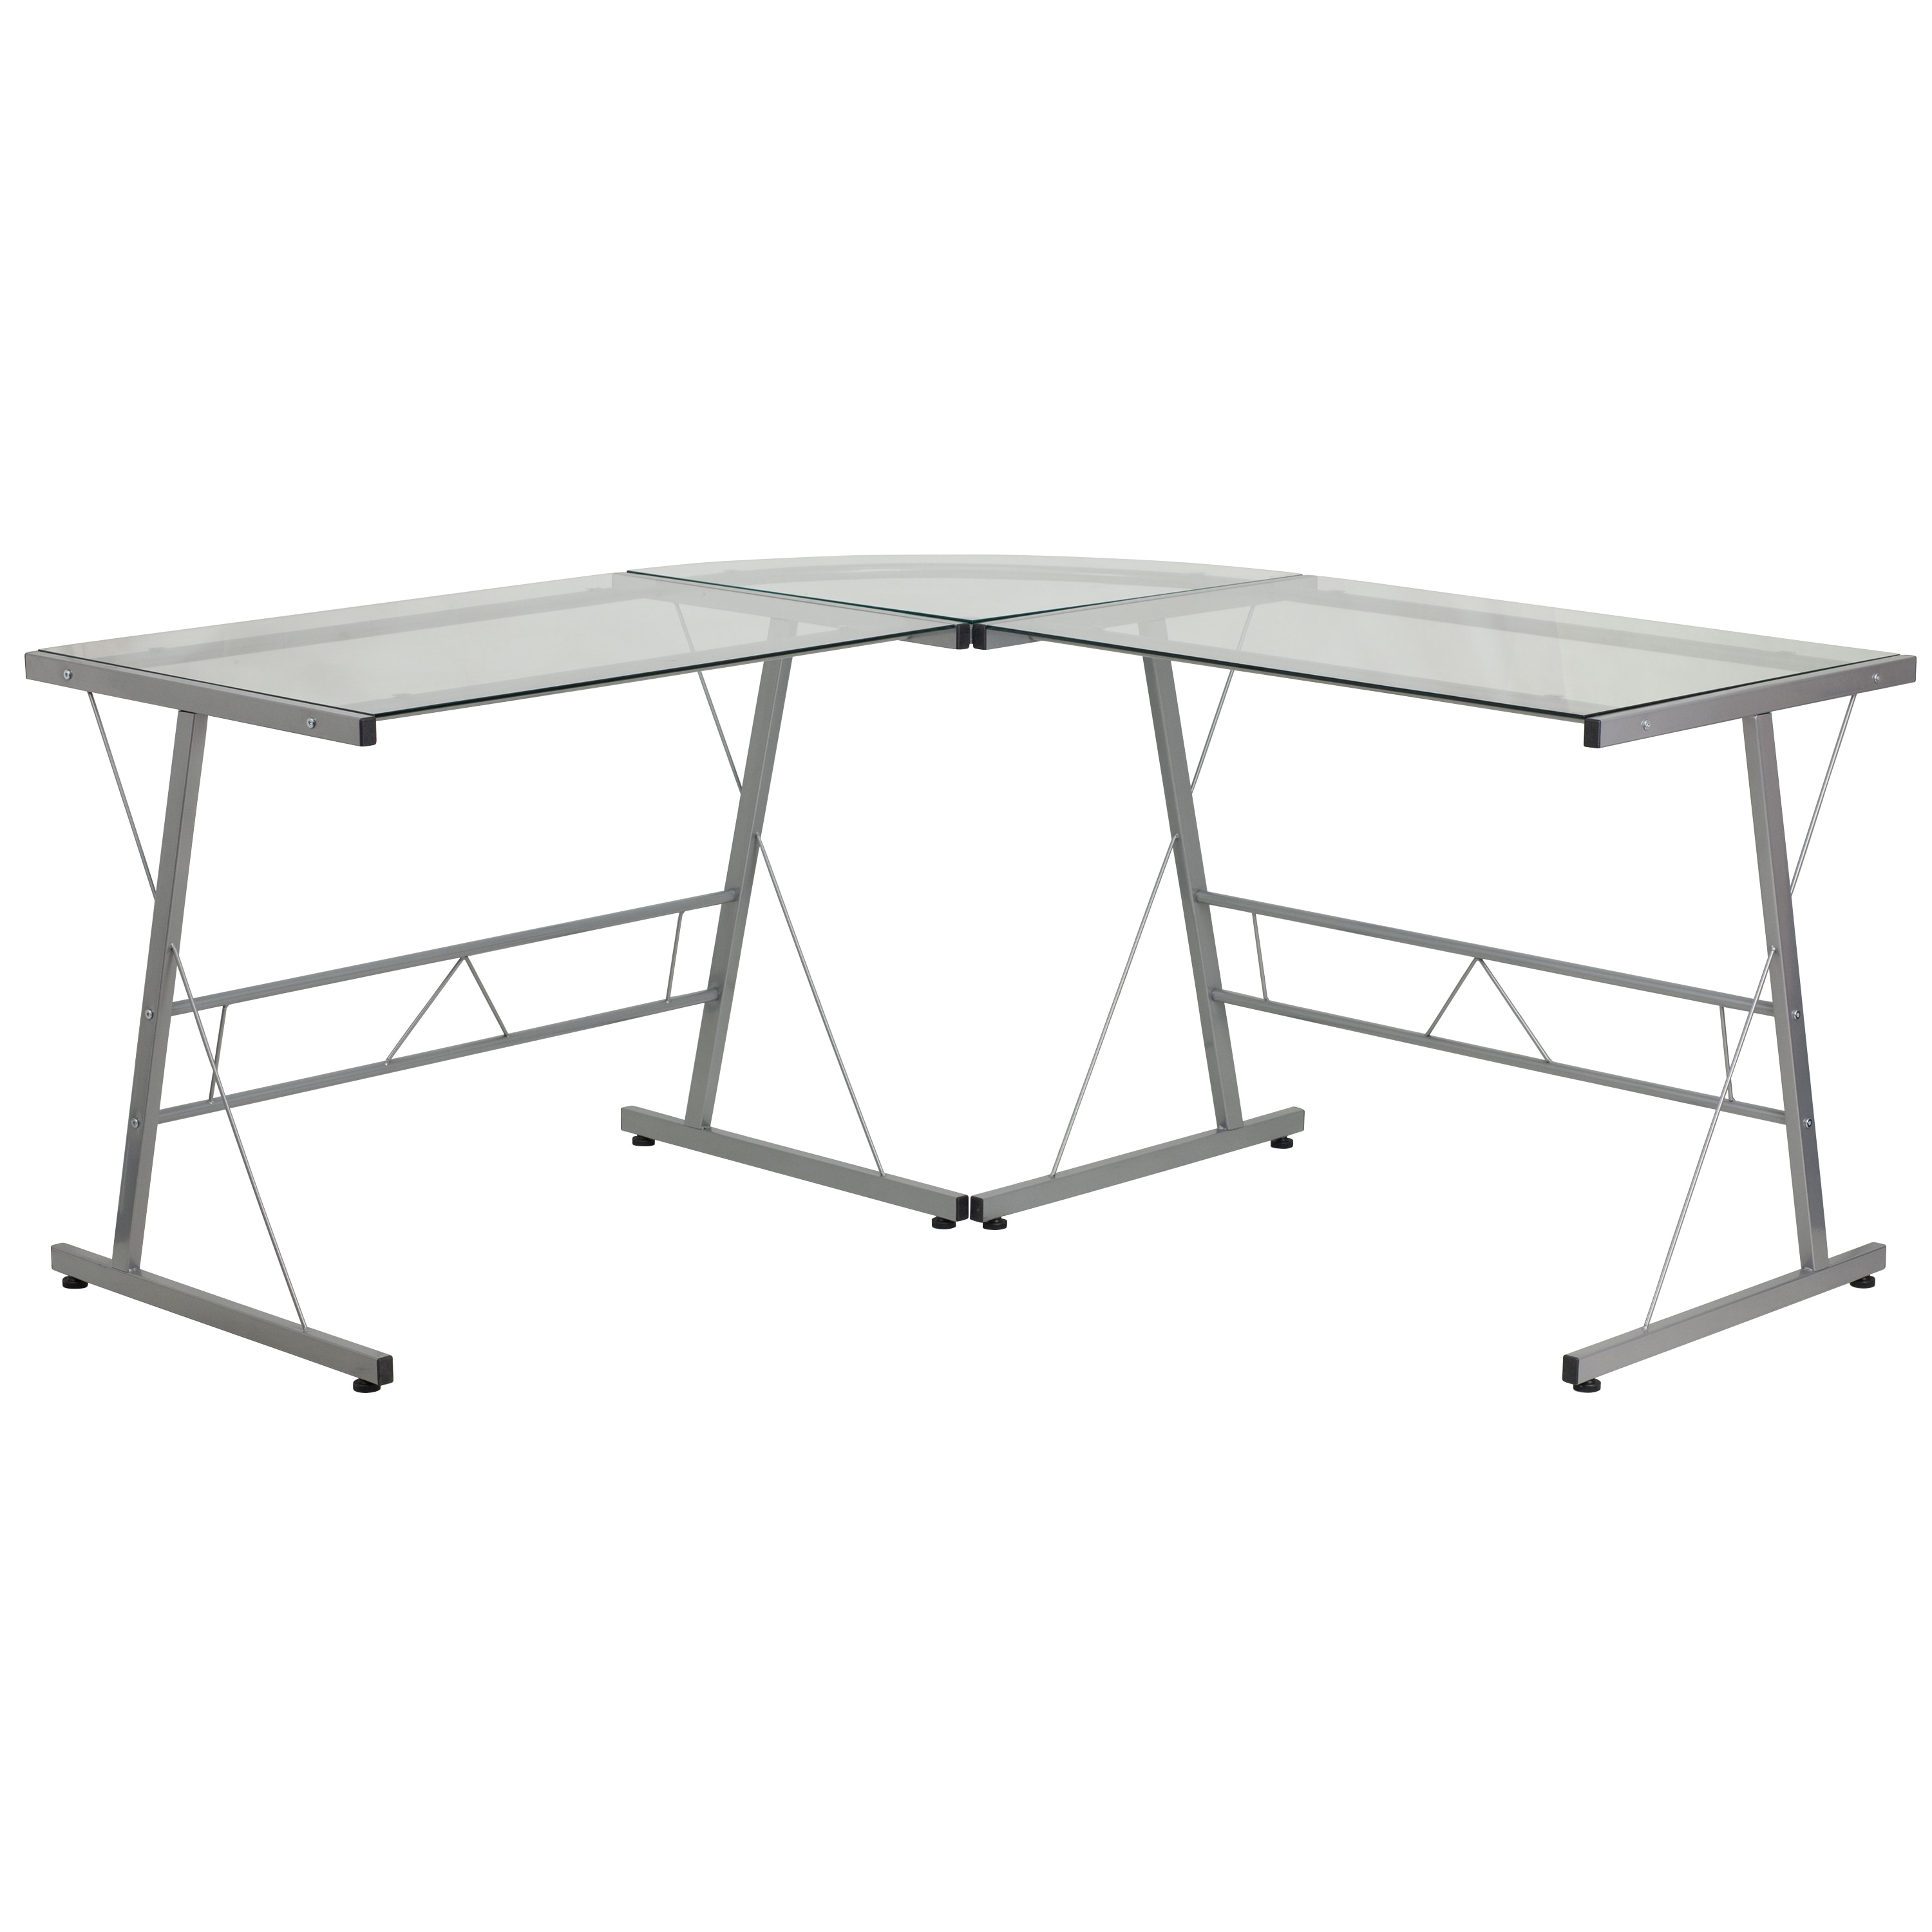 Inmir Glass L-shaped Glass Computer Desk with Metal Frame (1 Desk)